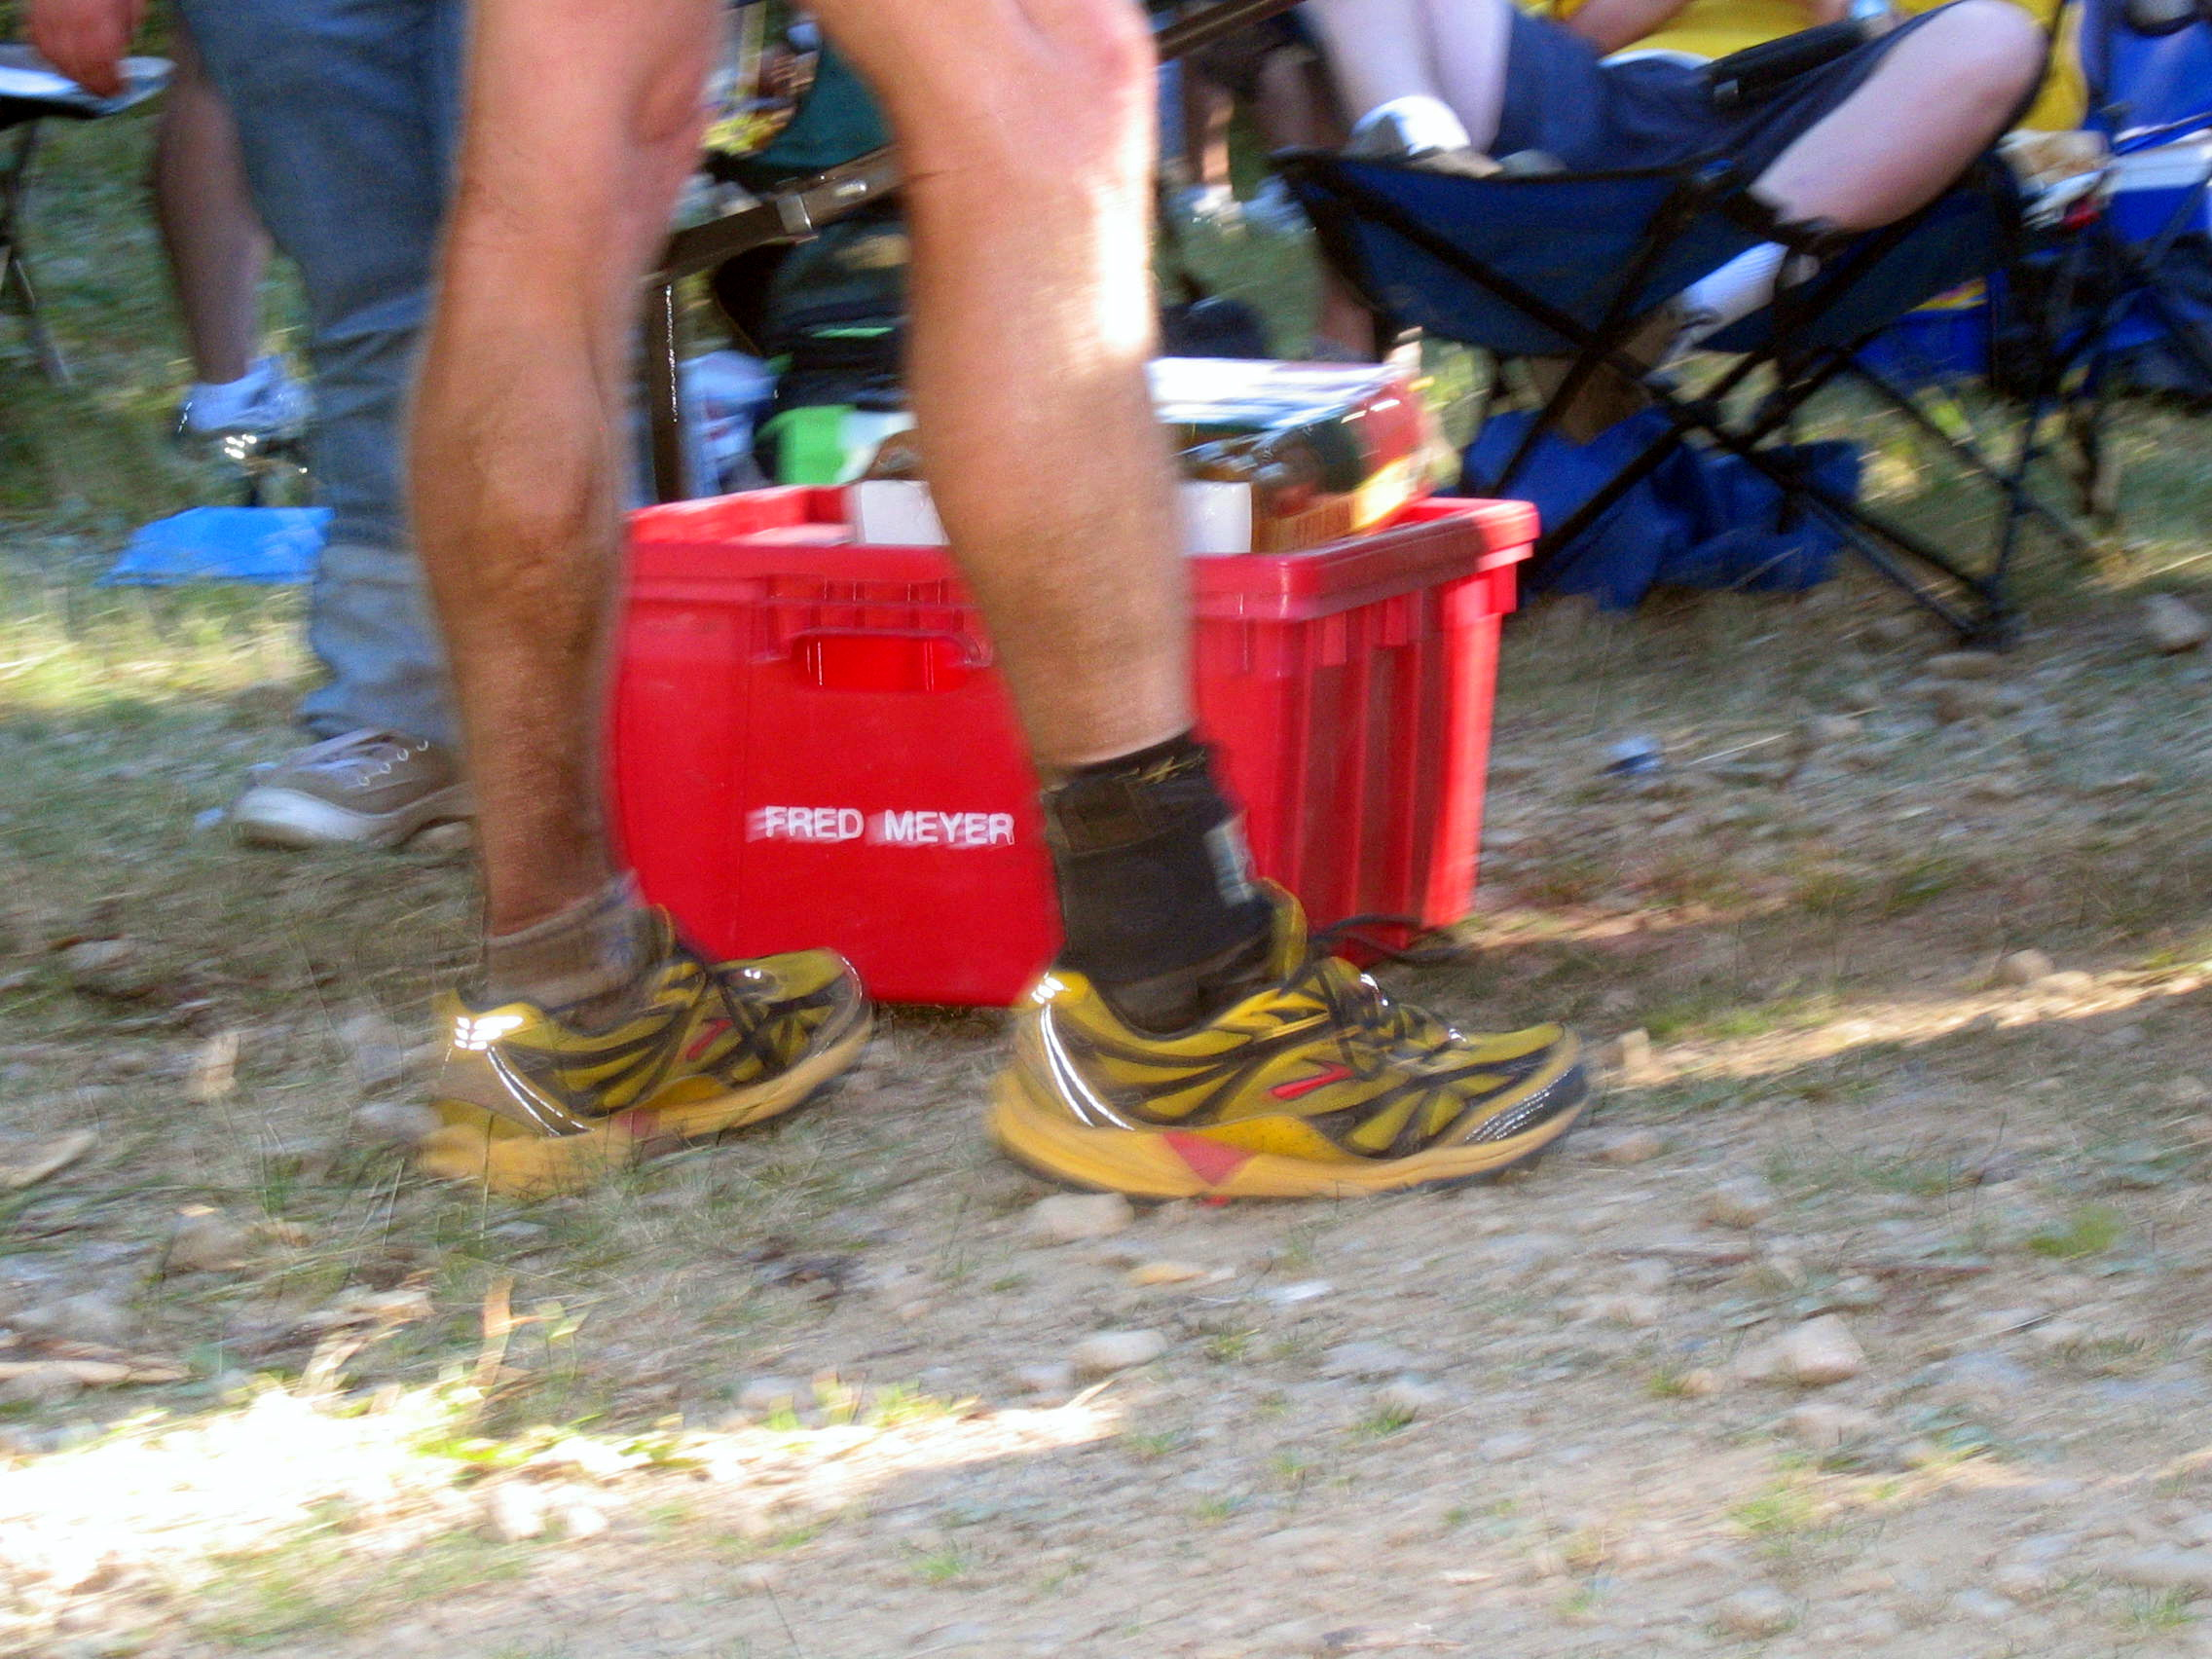 Nice ankle brace.  Can you guess who belongs to it?